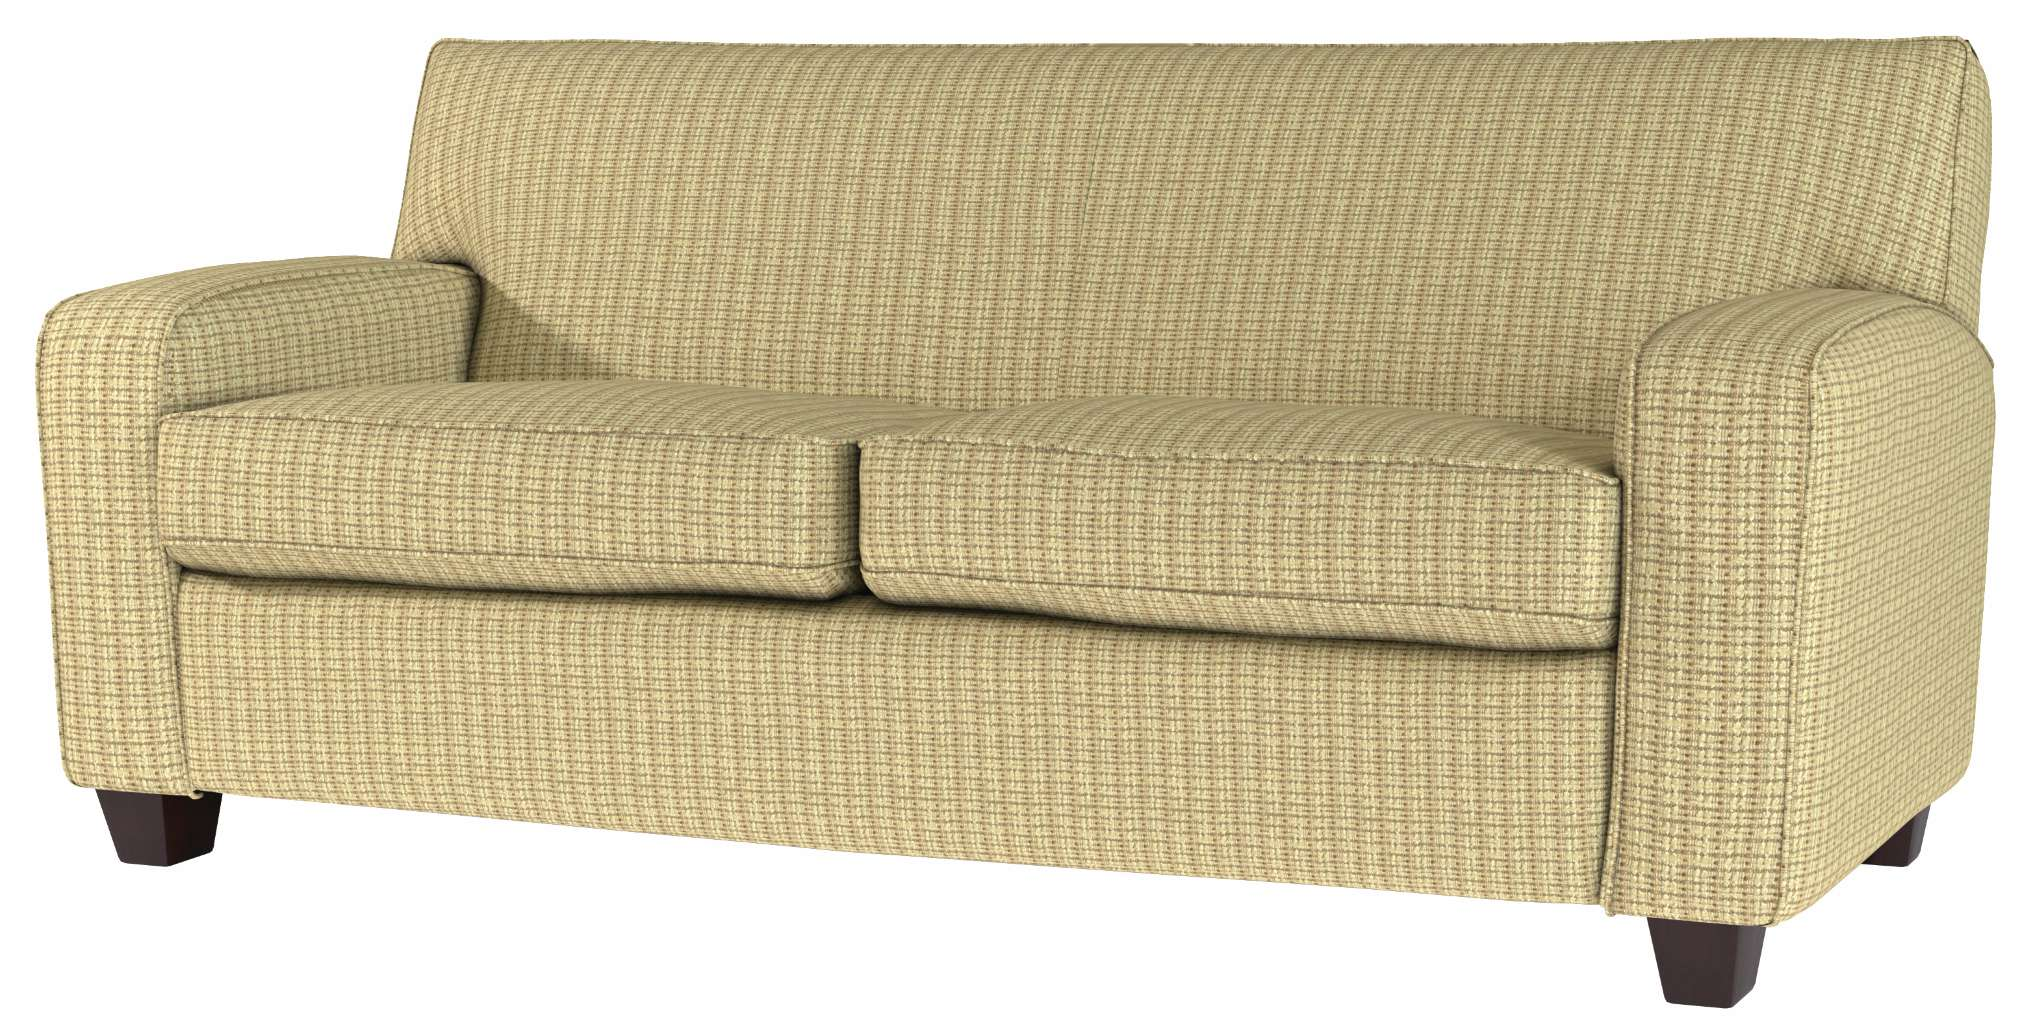 crypton fabric for sofas wooden sofa set philippines quick ship galveston apartment sized in questions or quotes